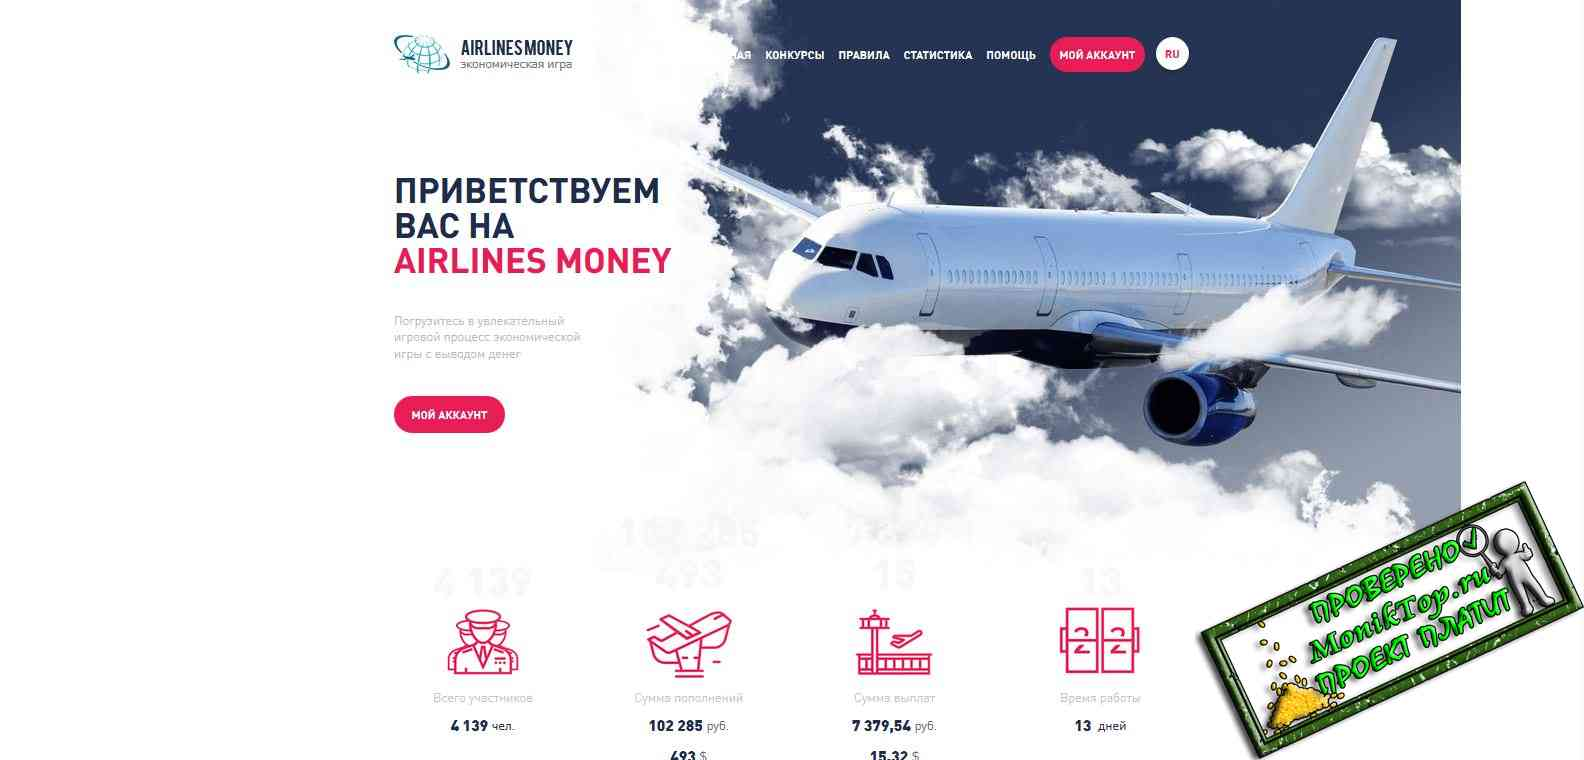 AirlinesMoney